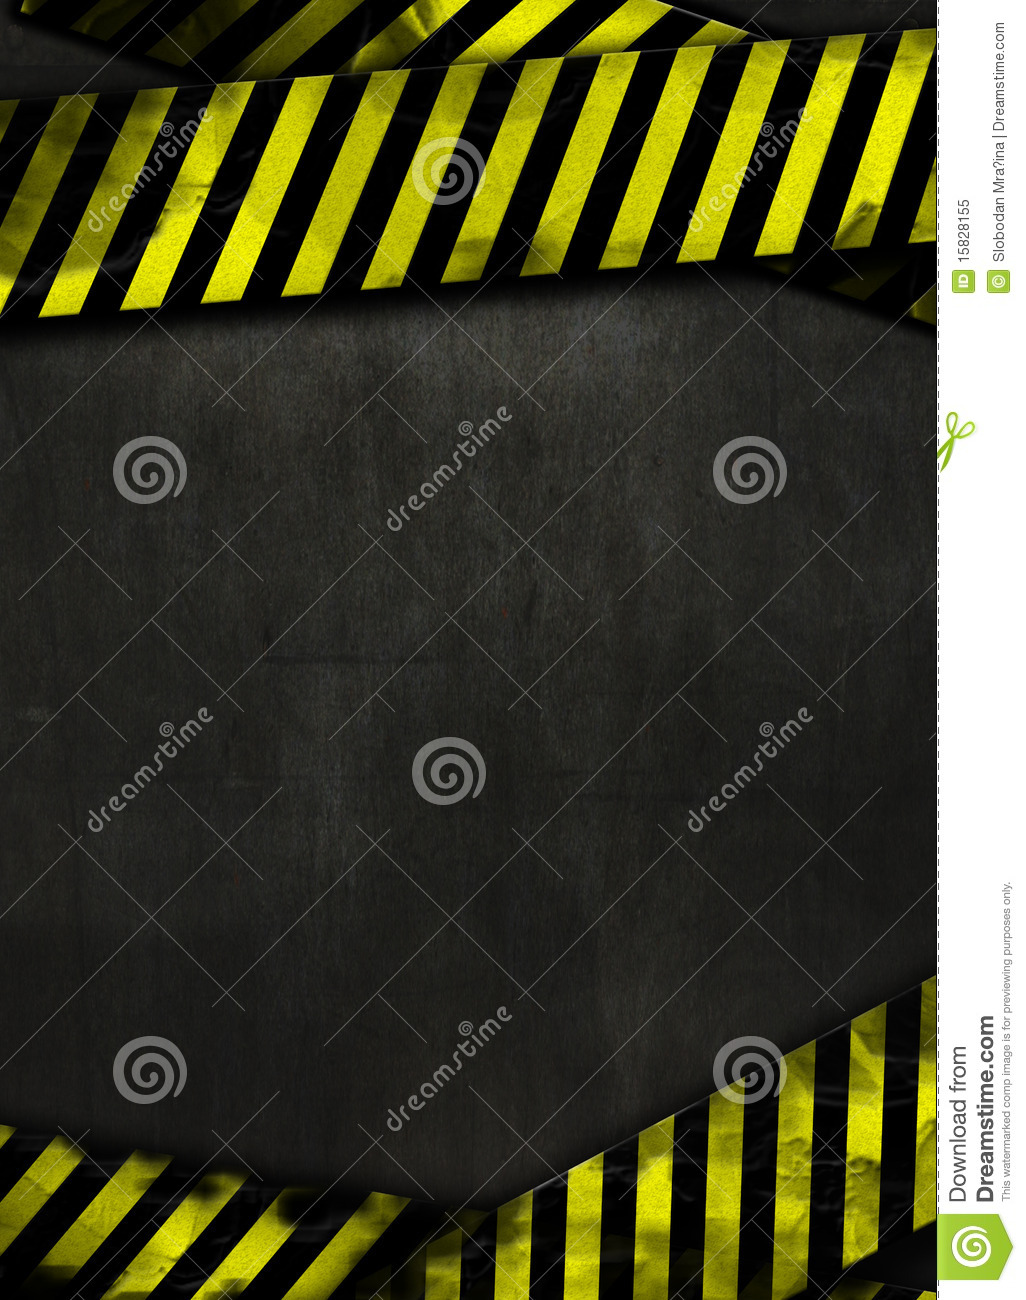 Black background and yellow tape